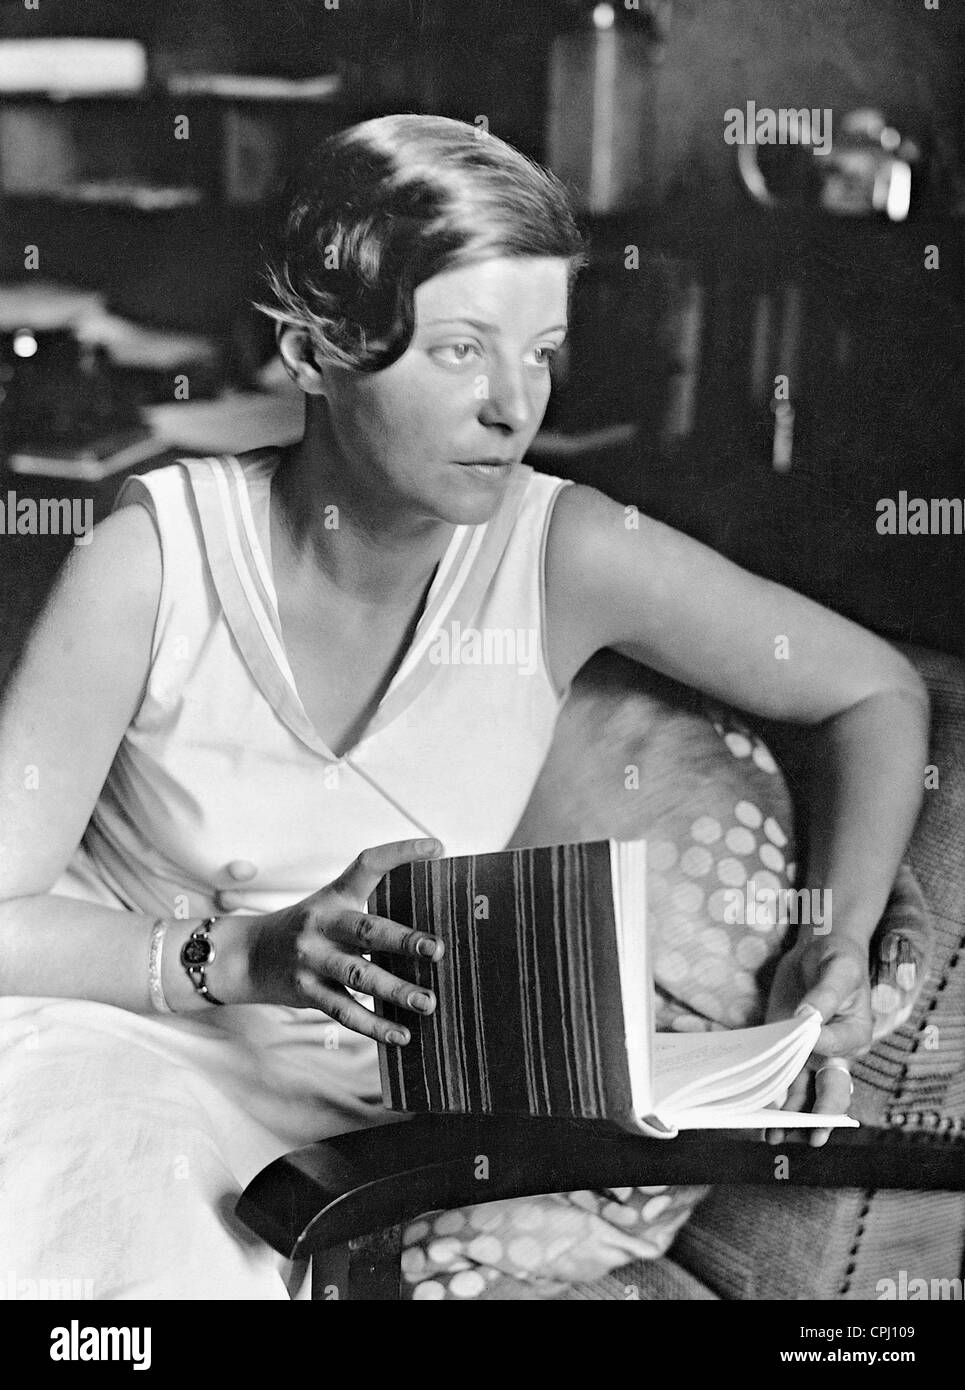 Elly Beinhorn, 1938 - Stock Image